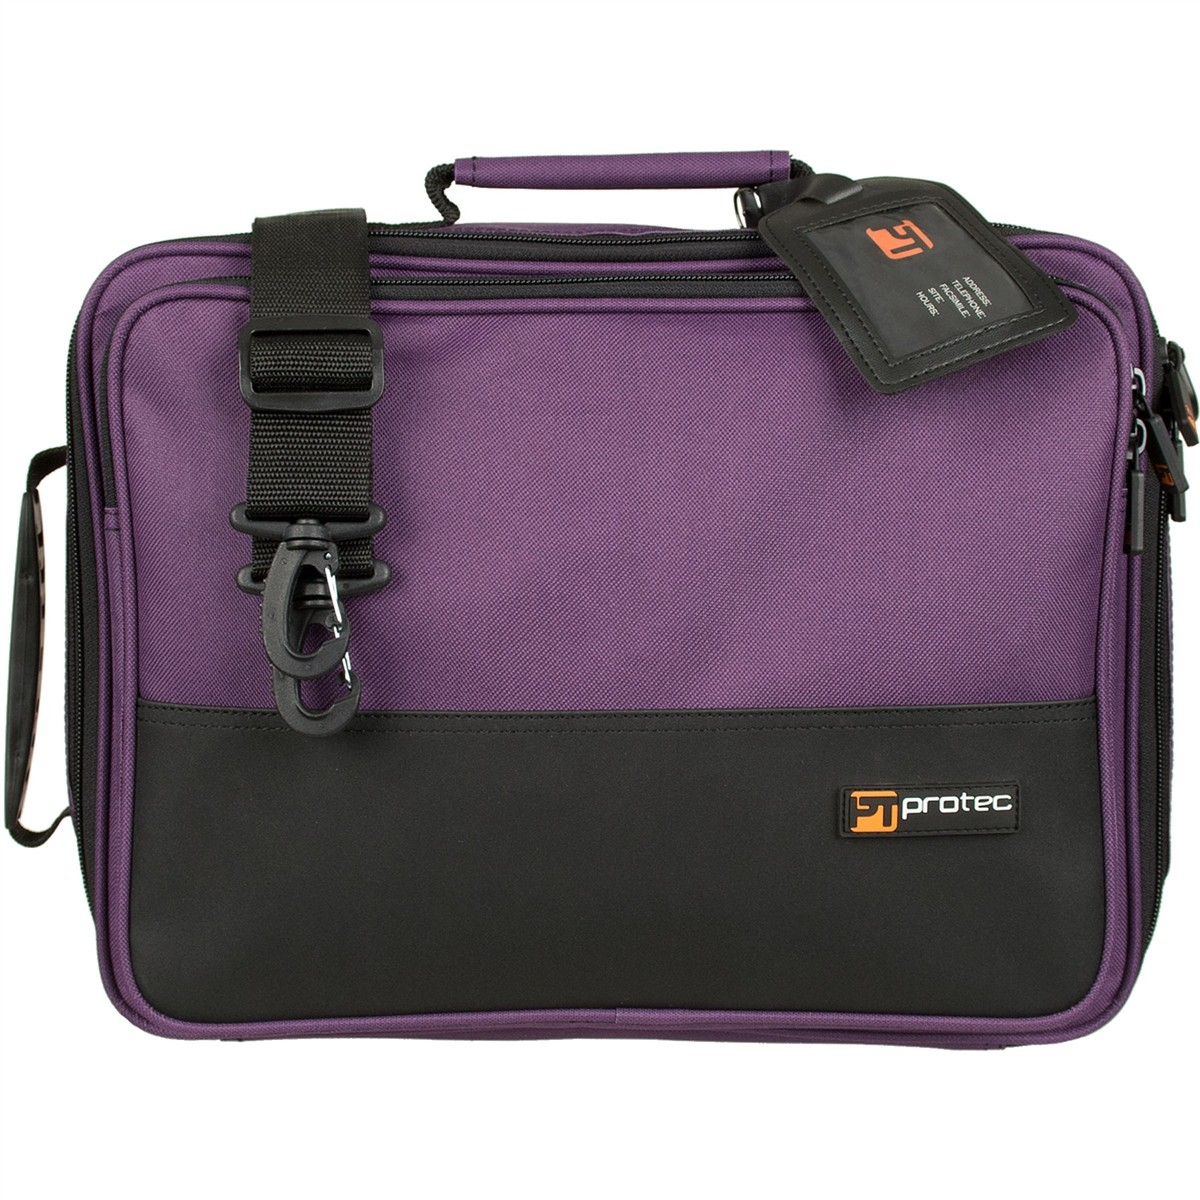 Protec Deluxe Clarinet / Oboe Case Cover (Purple A307PR)